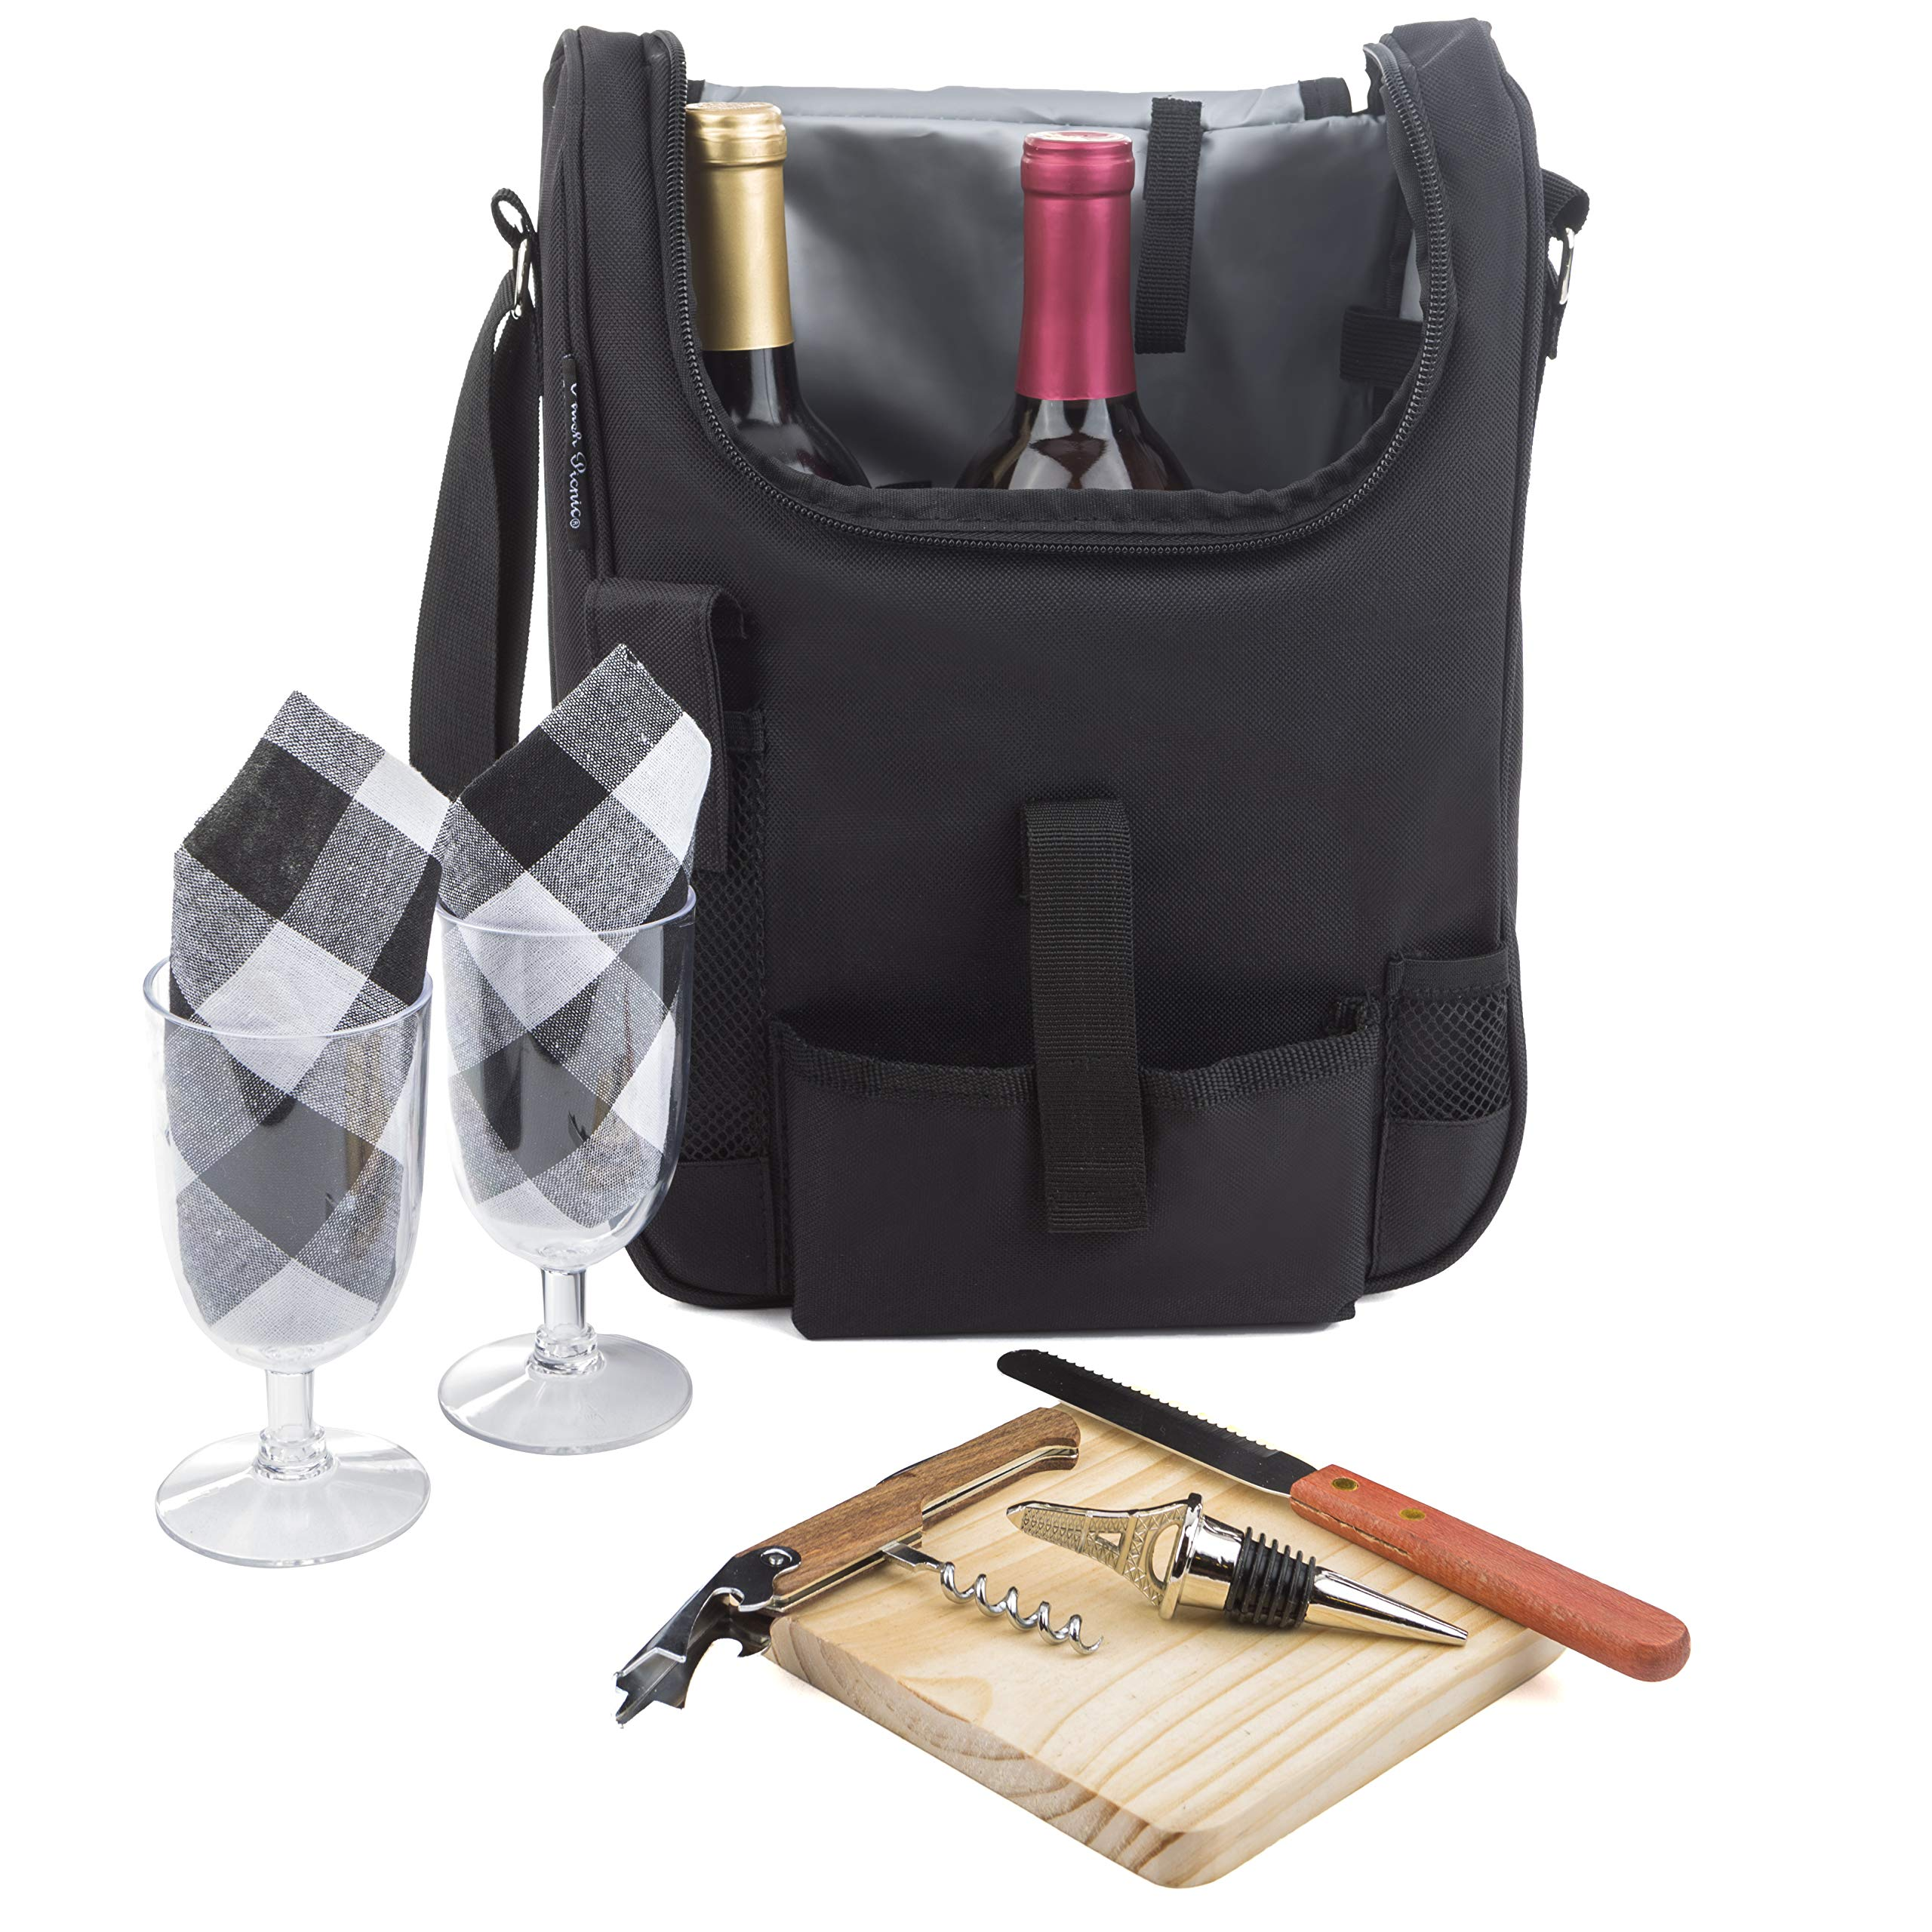 Insulated Travel Wine Tote Bag: Portable 2 Bottle Wine and Cheese Waterproof Black Canvas Carrier Bag Set with Picnic Backpack Kit (Black) by Plush Picnic (Image #1)